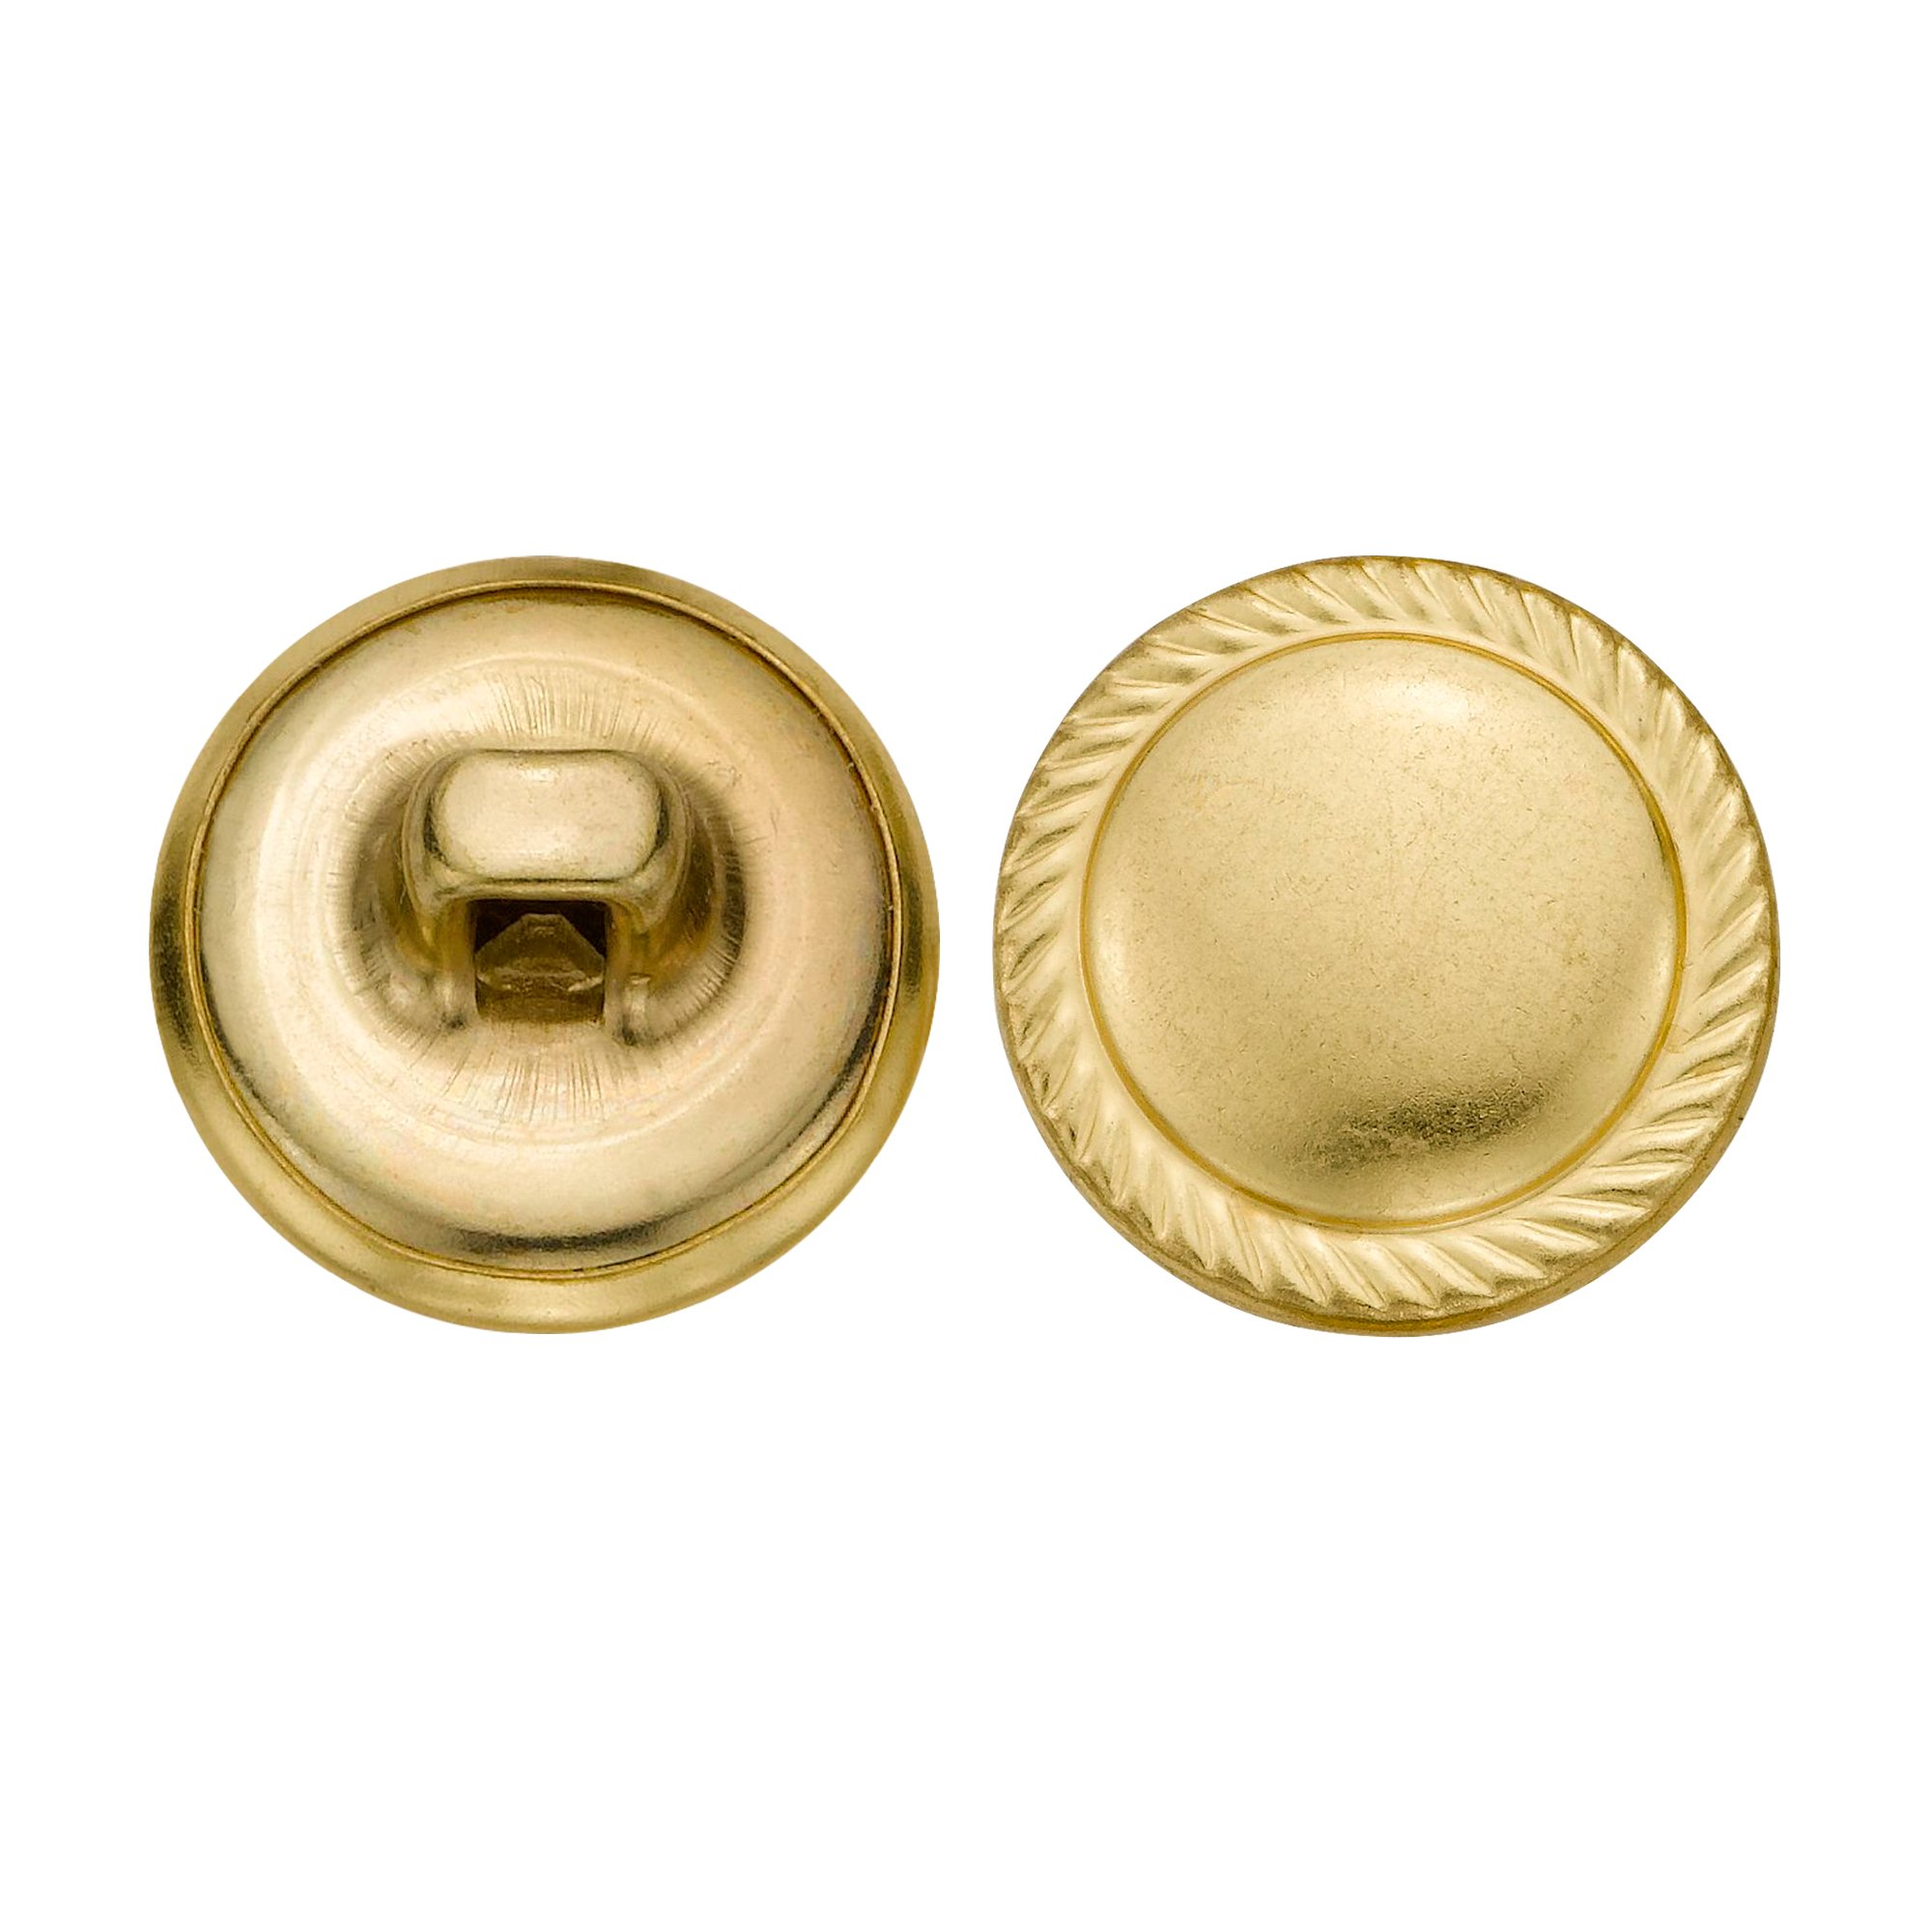 C&C Metal Products 5351 Rope Edge Dome Metal Button, Size 24 Ligne, Gold, 72-Pack